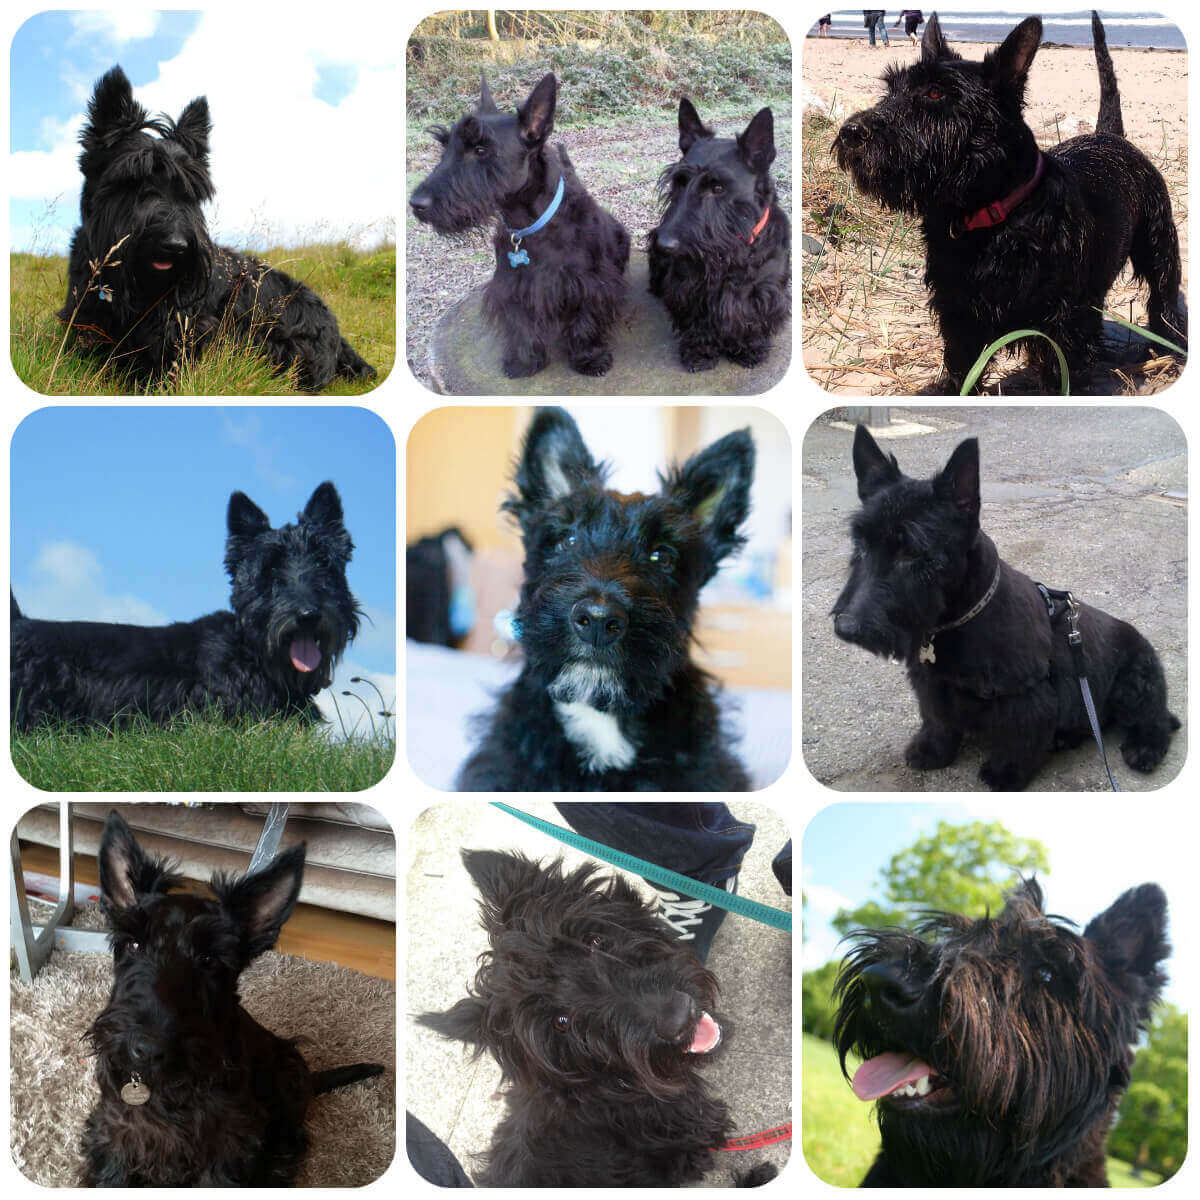 A collage of scottish terrier dogs and puppies, part of BorrowMyDoggy's guide to dog breeds.